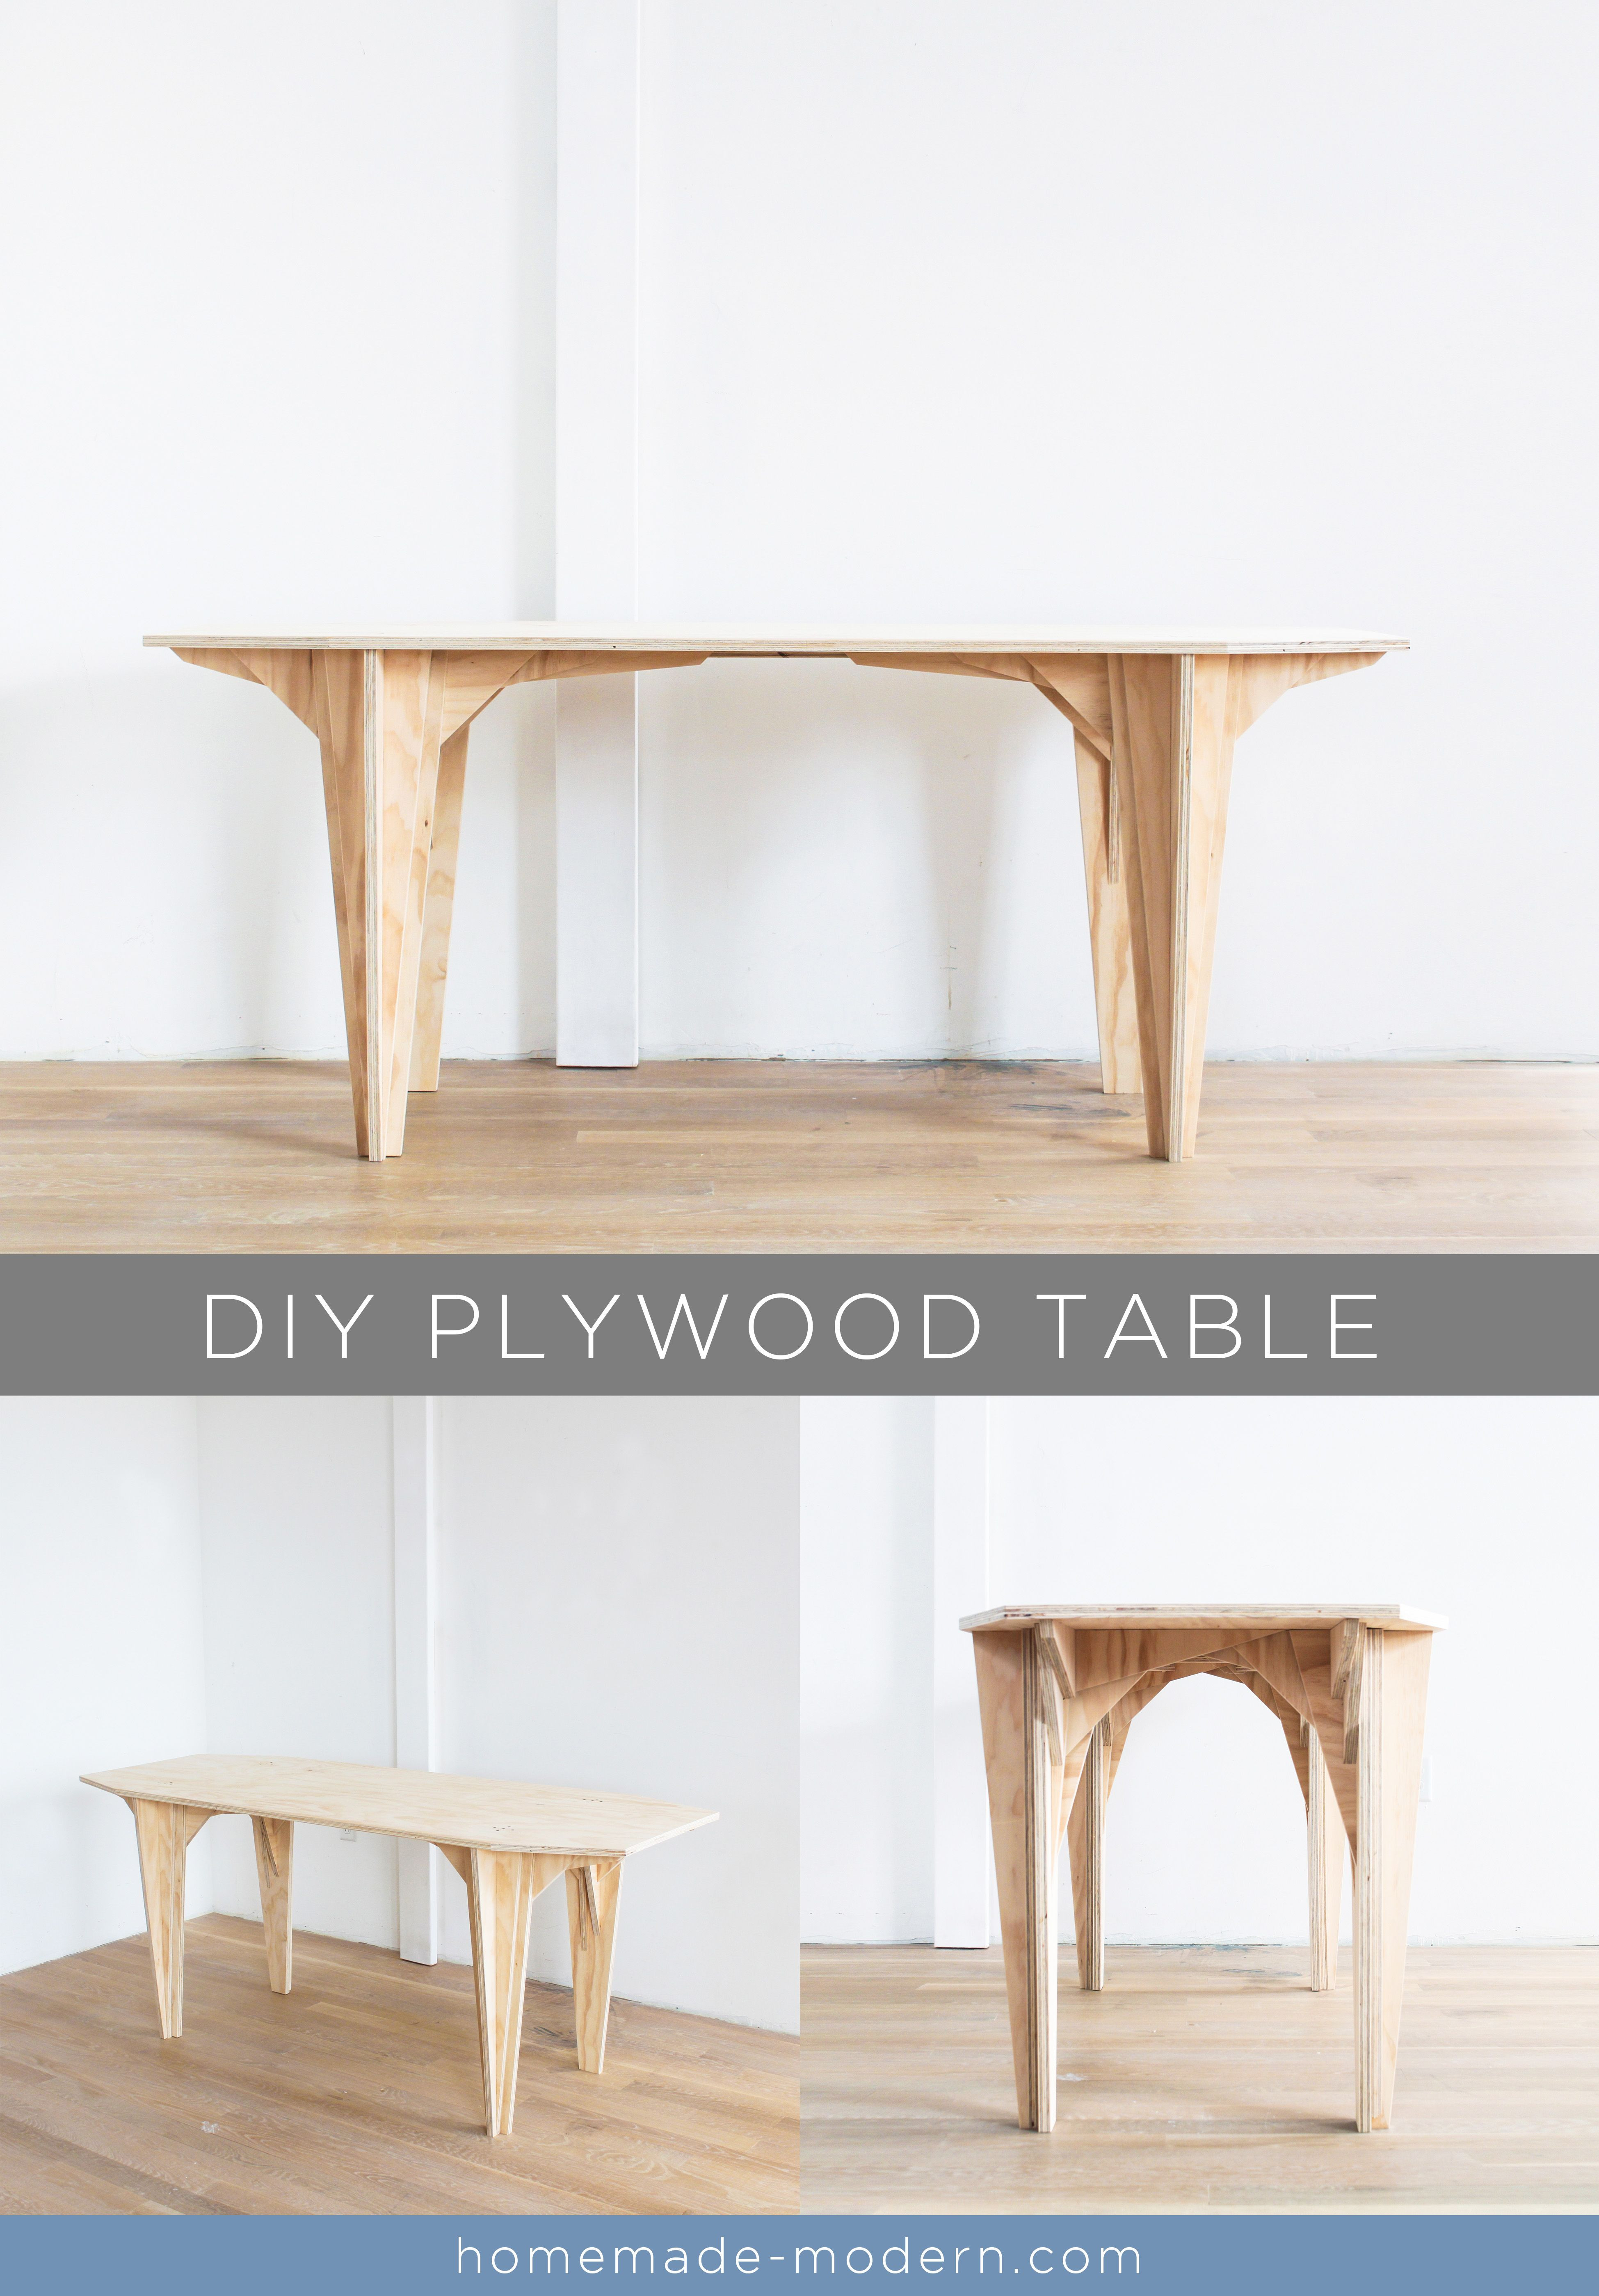 This Diy Modern Plywood Sofa Is Made Out Of 2 1 2 Sheets Of Plywood From Home Depot Full Instructions Ca Plywood Table Plywood Furniture Plans Plywood Diy